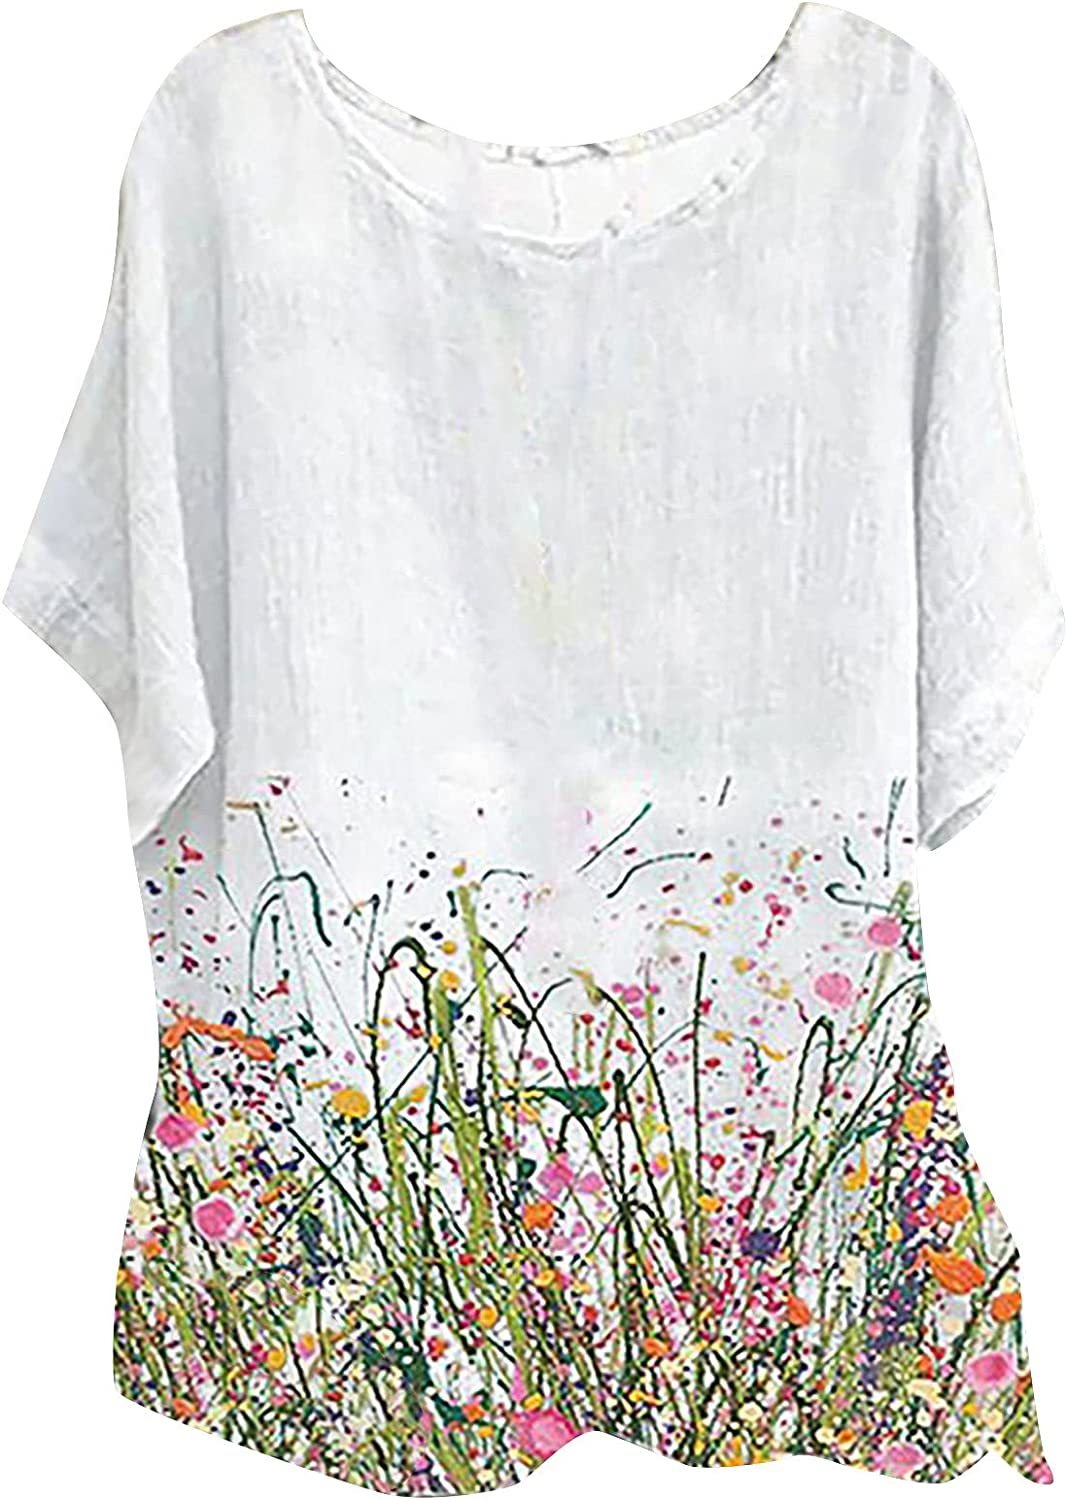 BOXIACEY Women's Summer Shirts O-Neck Loose Blouse Short Sleeve Cotton Linen Print Tops Plus Size Tees